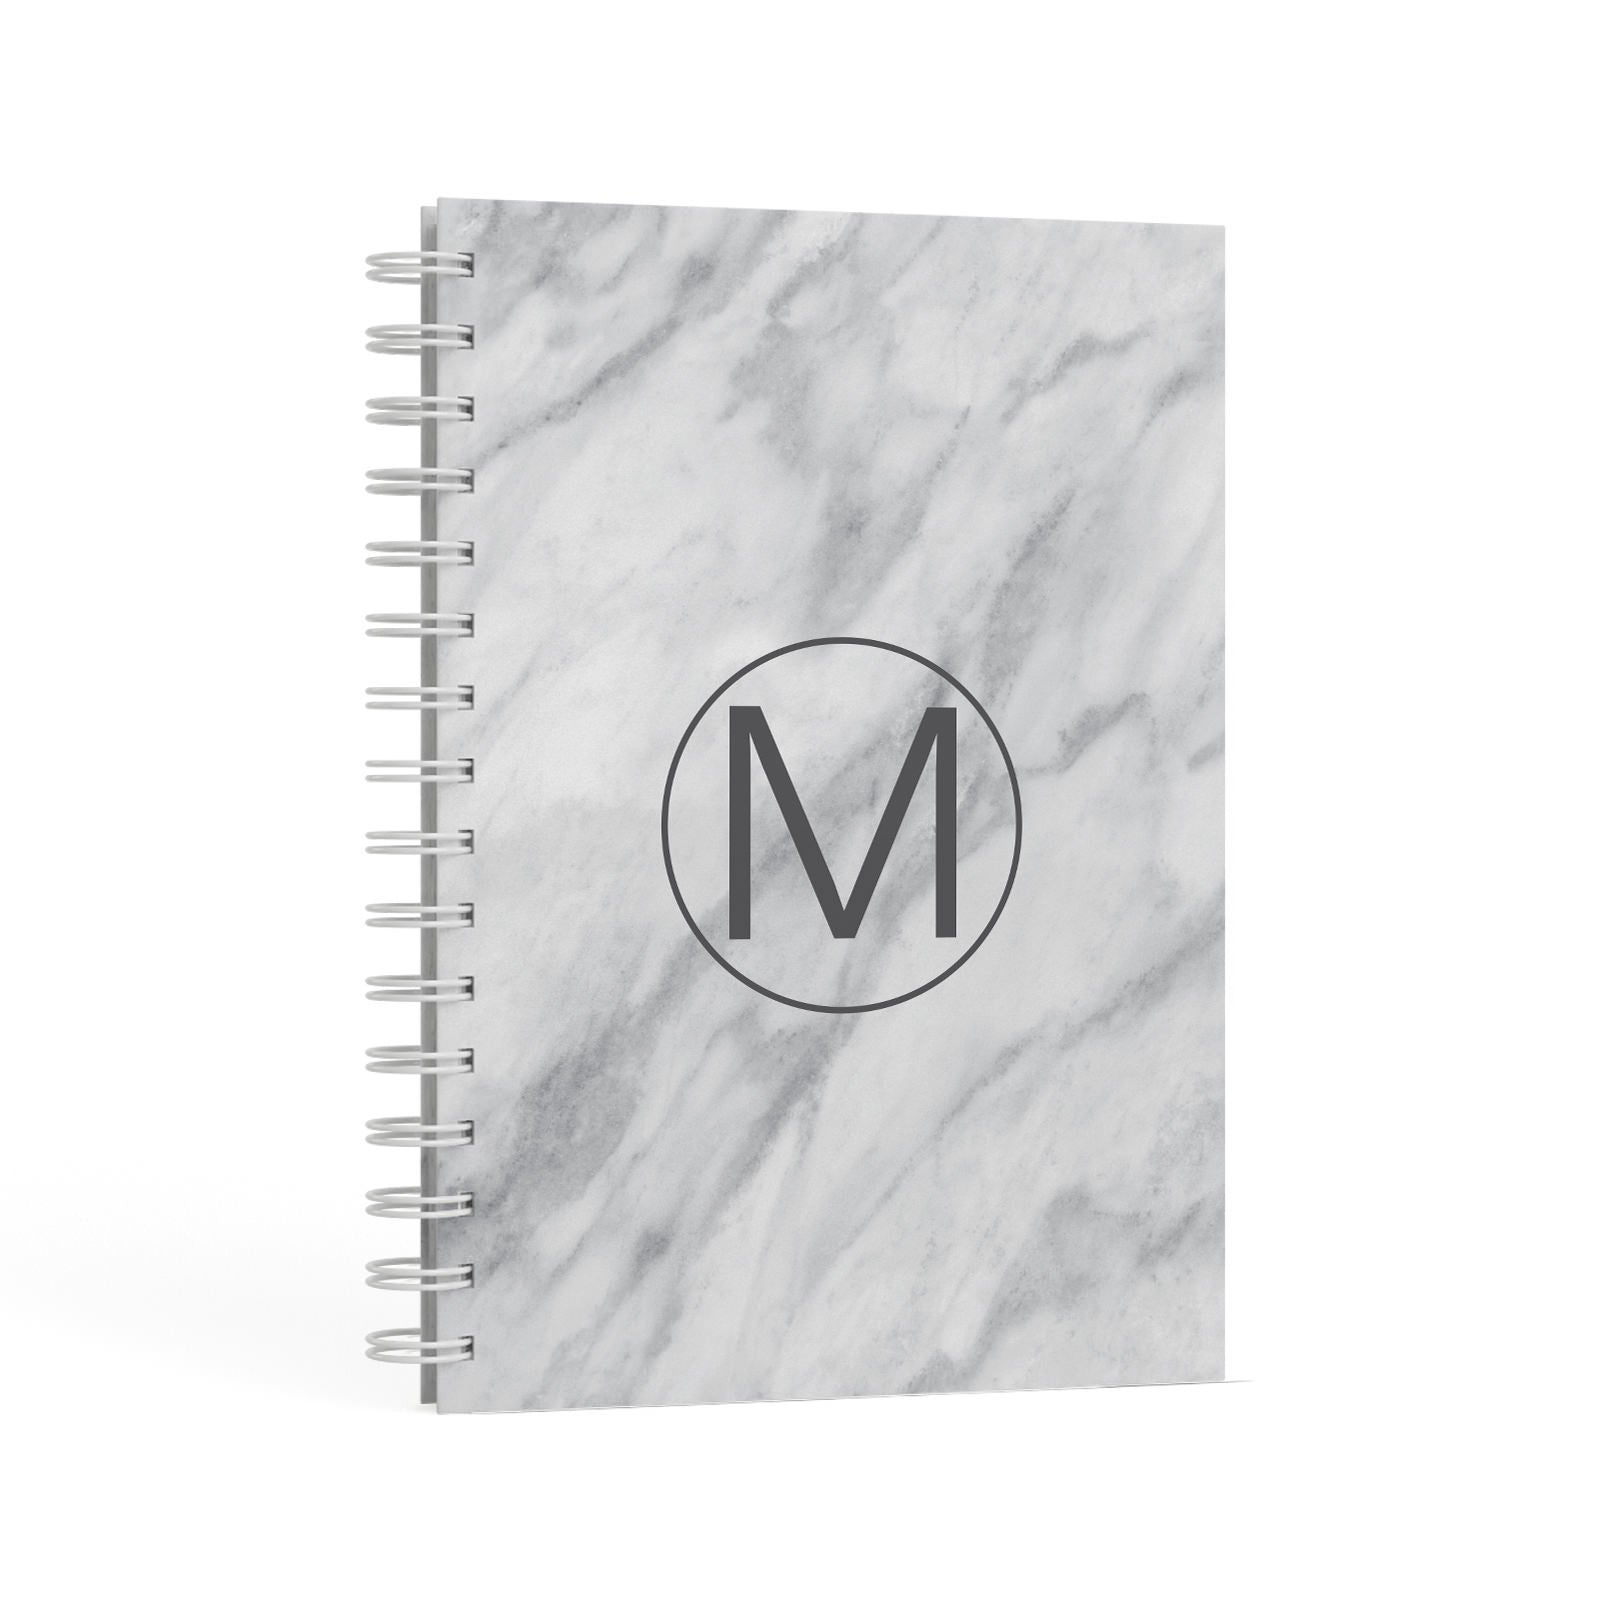 Marble Personalised Monogram A5 Hardcover Notebook Second Side View